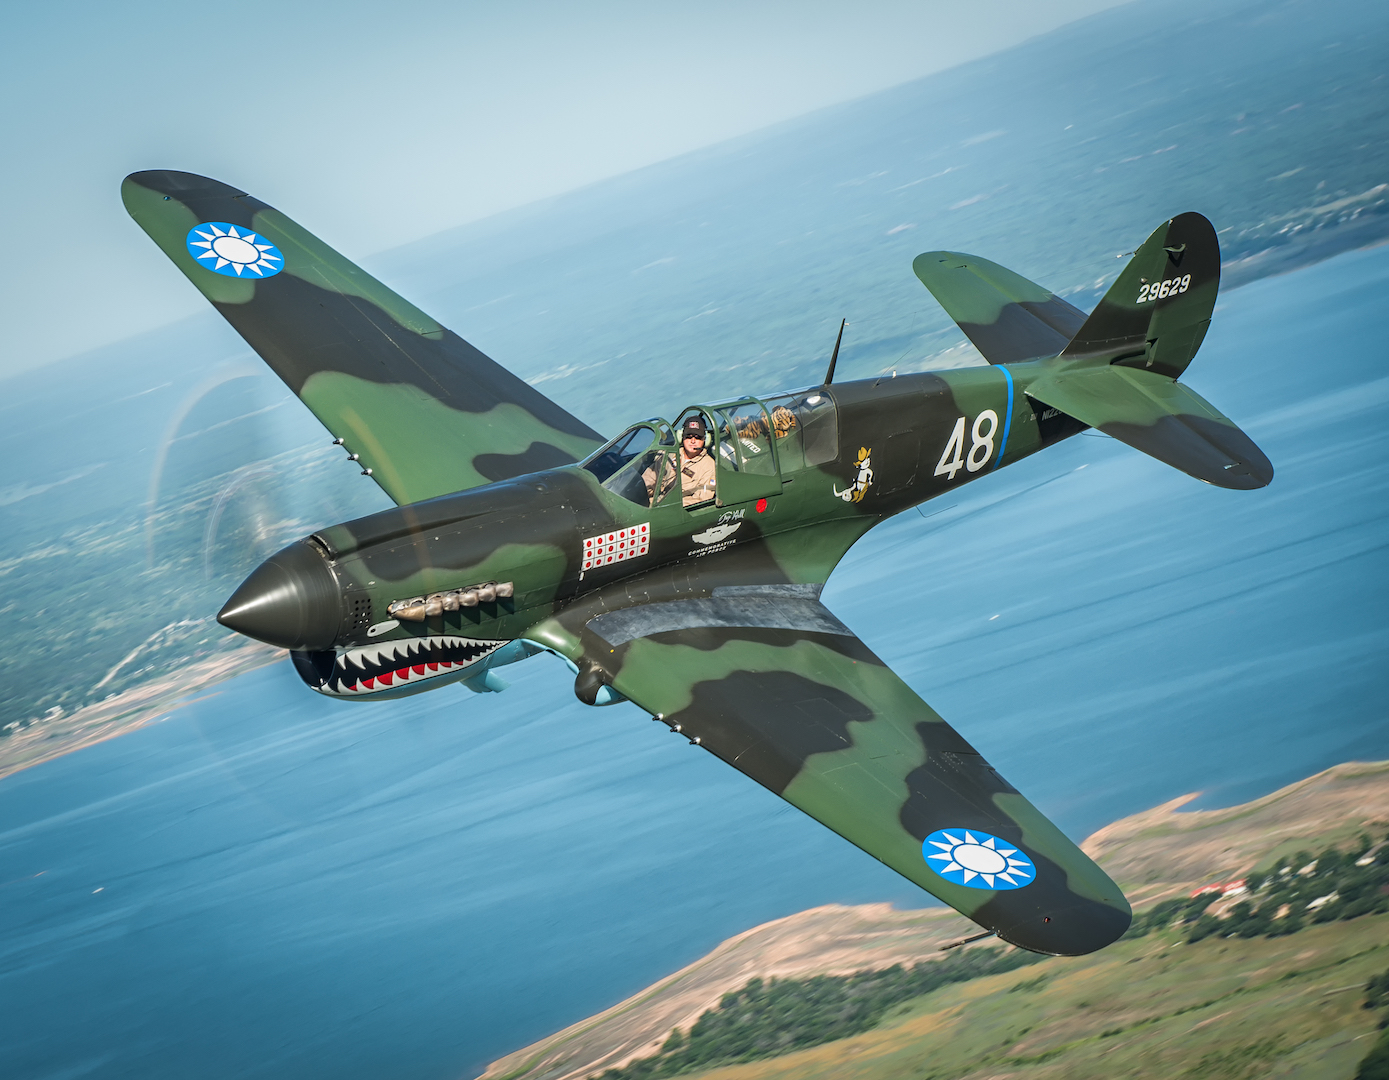 The CAF P-40 Warhawk.Photo by Glenn Watson